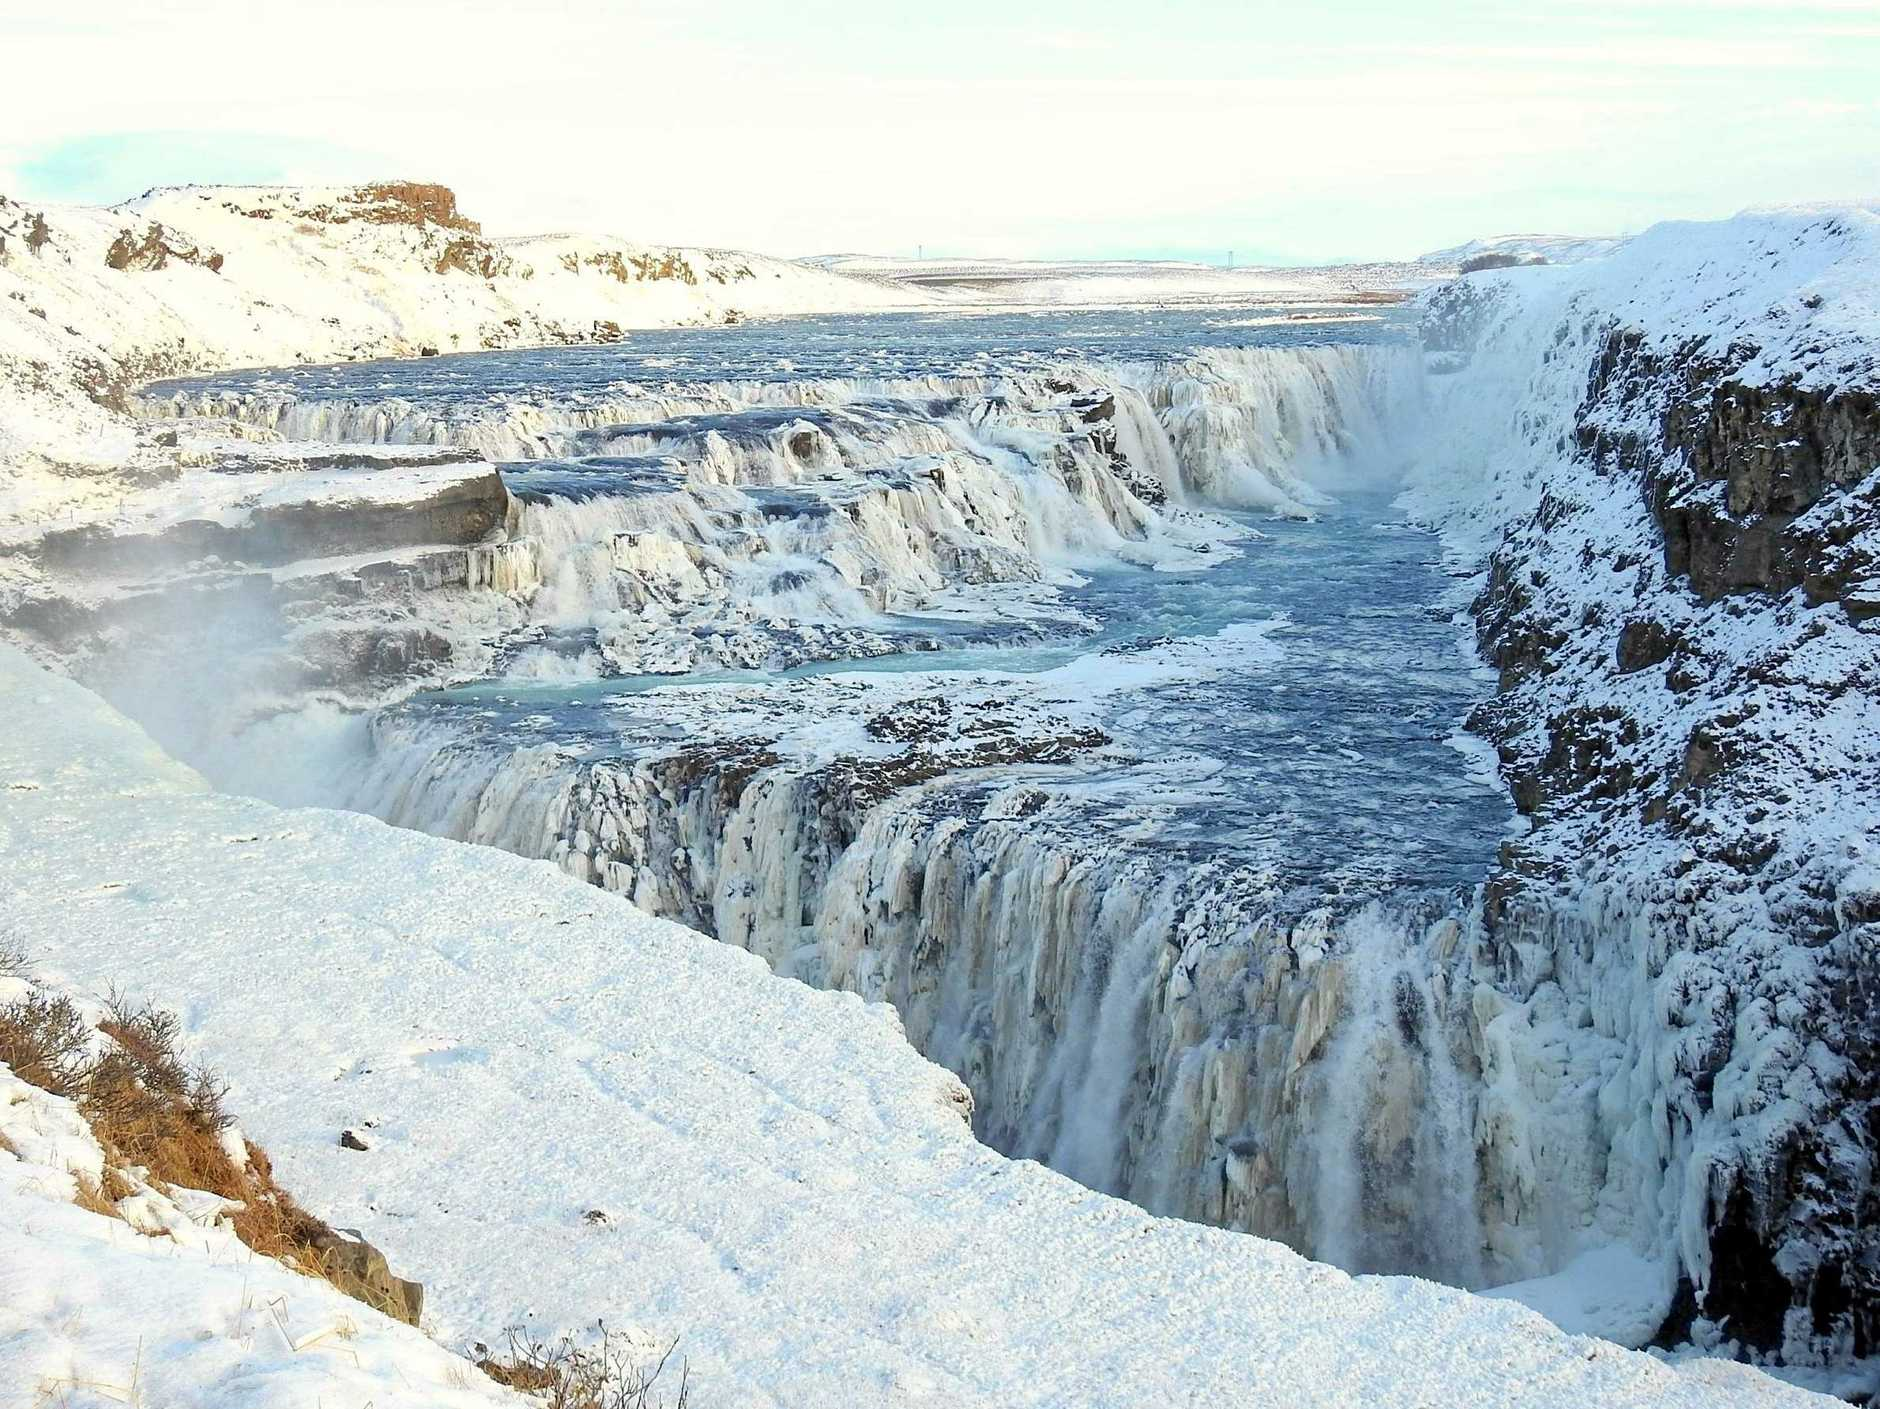 THE MIGHT OF NATURE: Gullfoss, a waterfall in the canyon of the Hvítá river in southwest Iceland.